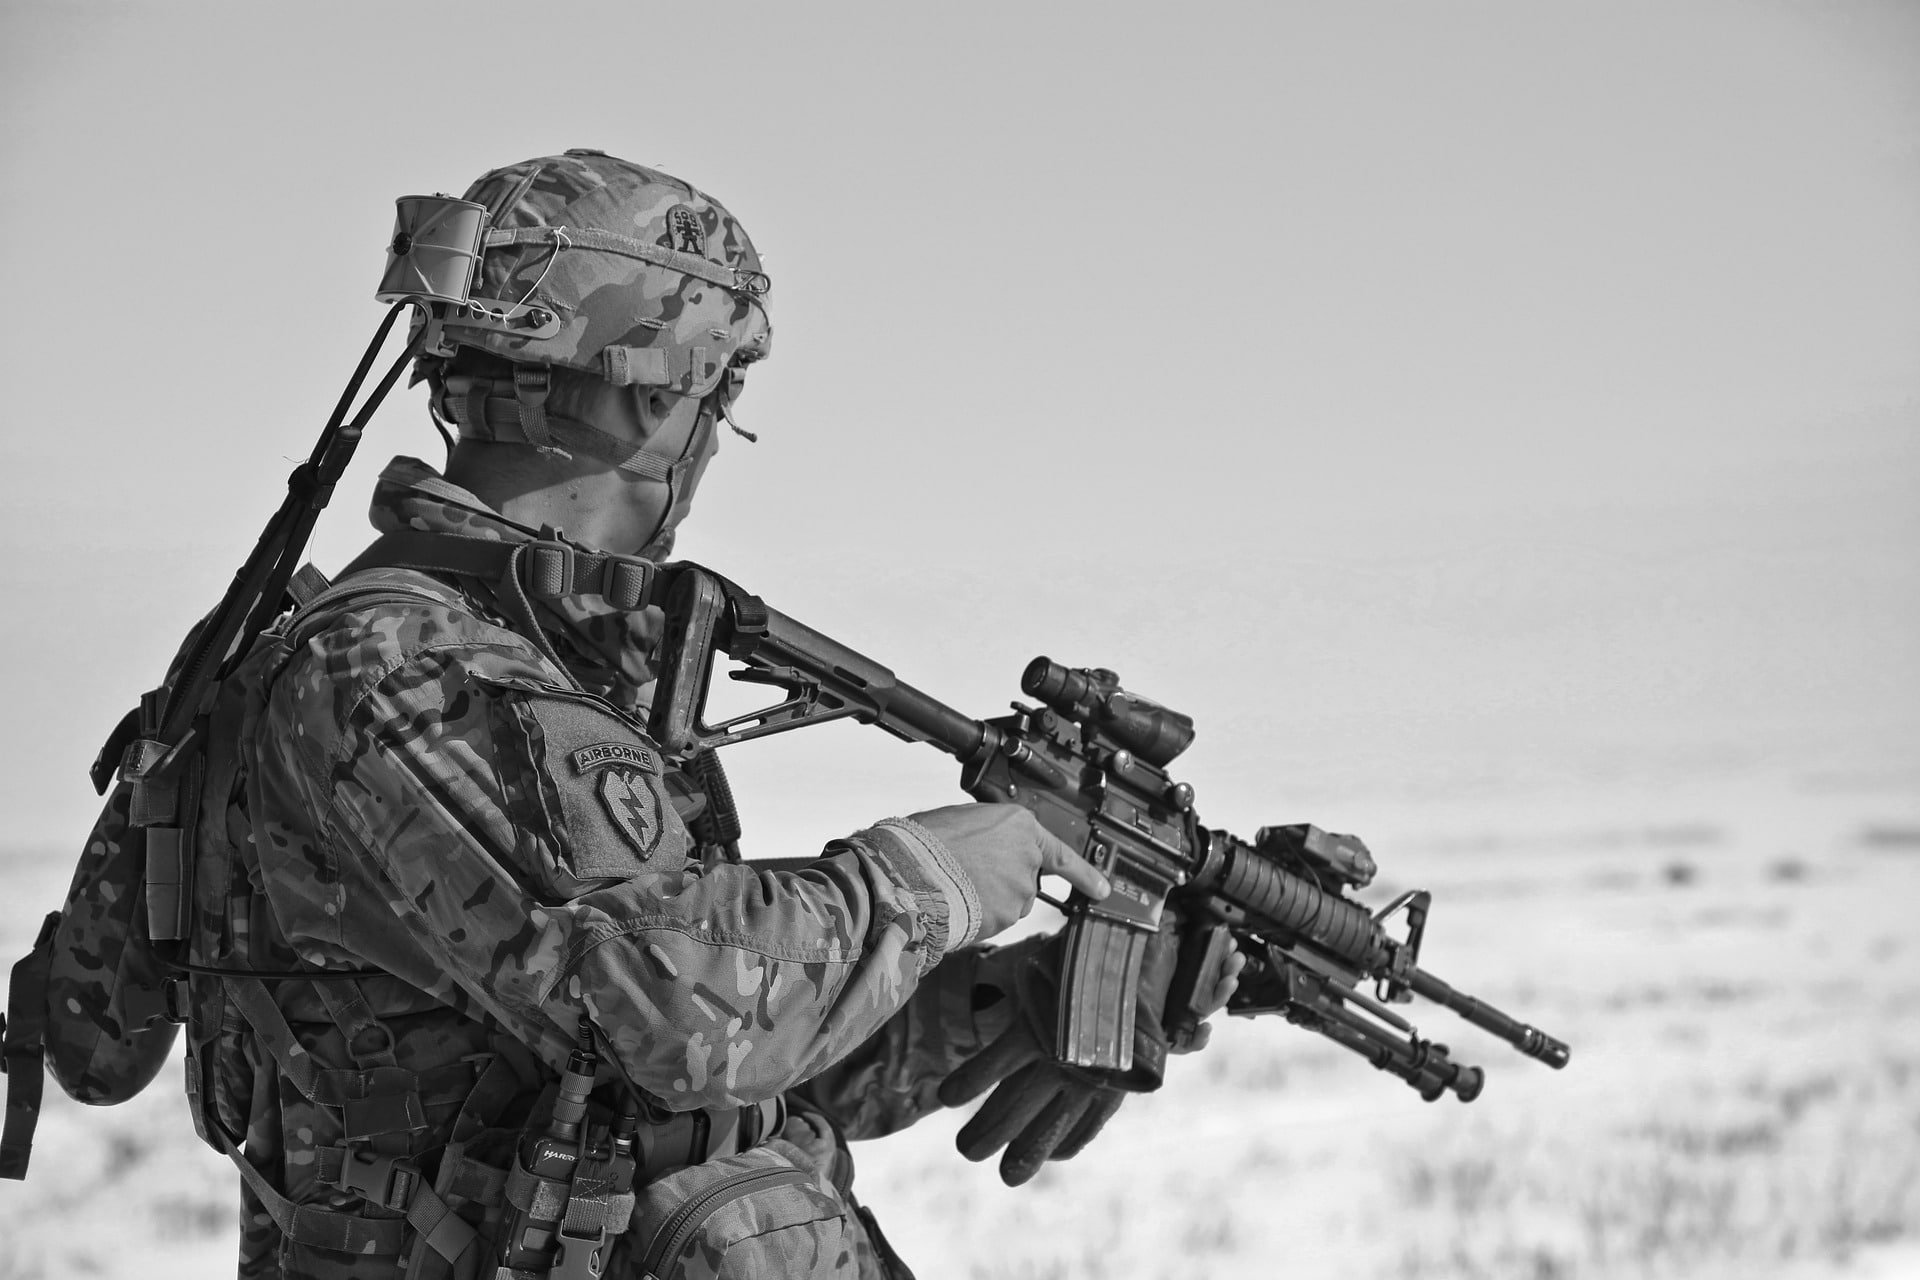 solider in us uniform with rifle